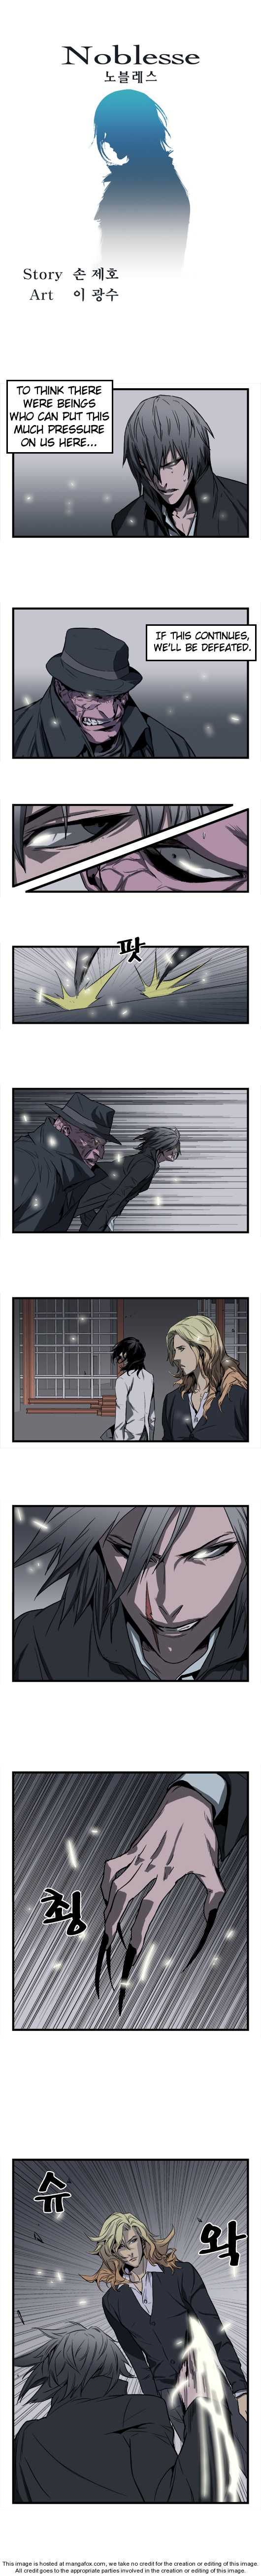 Noblesse 32 Page 1